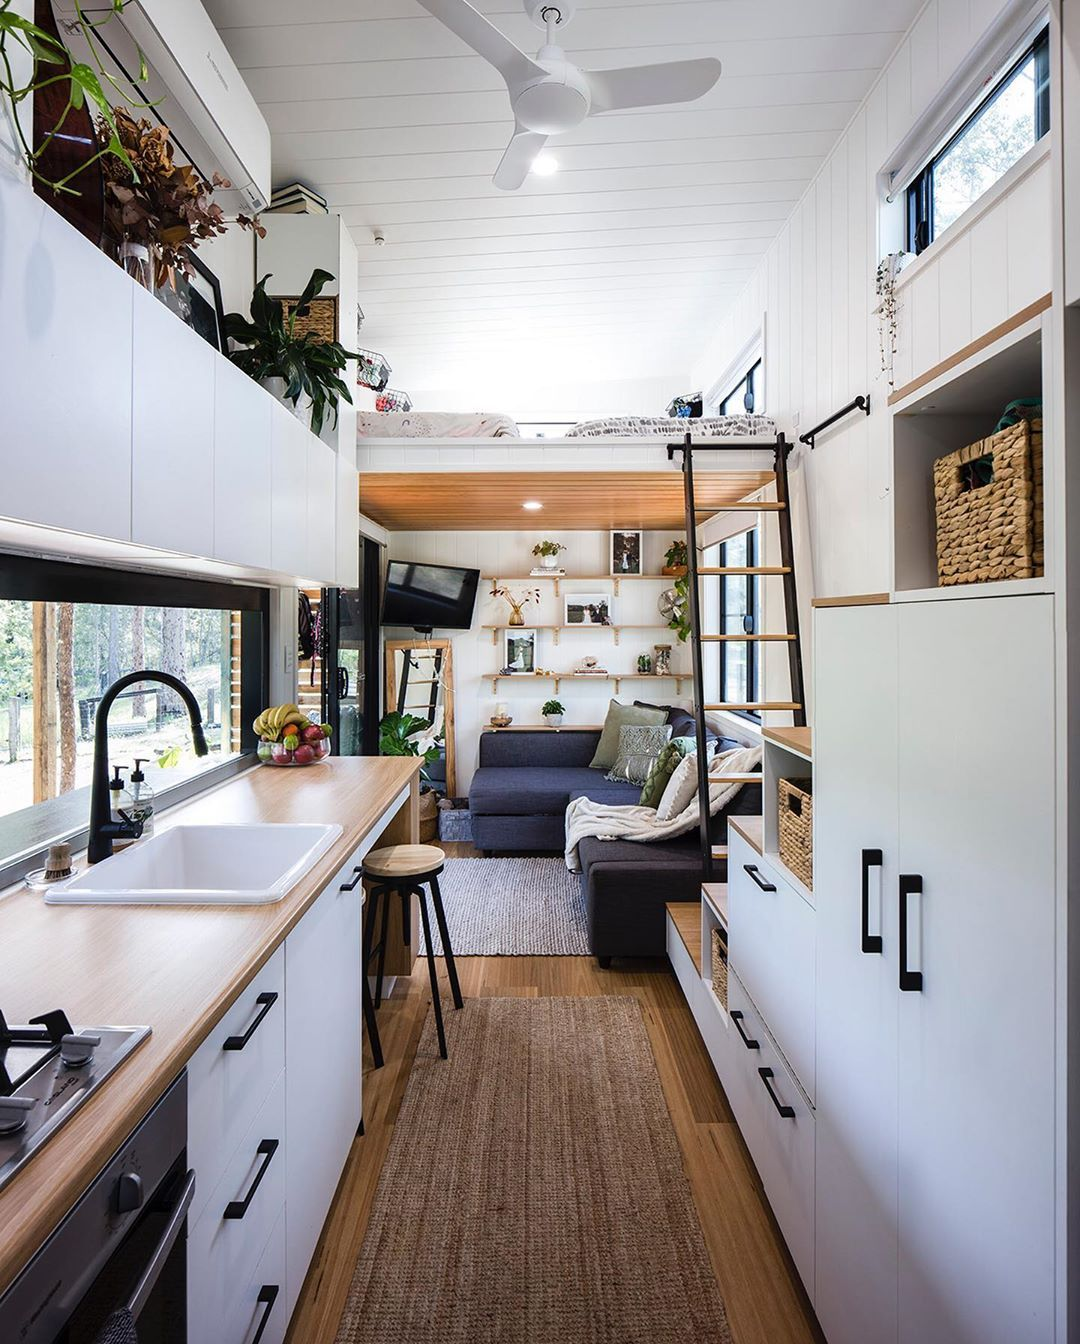 Aussie Tiny Houses On Instagram Would You Like To Live In A Tiny House Like This Kitchen Livin In 2020 Tiny House Loft Tiny House Kitchen Modern Tiny House